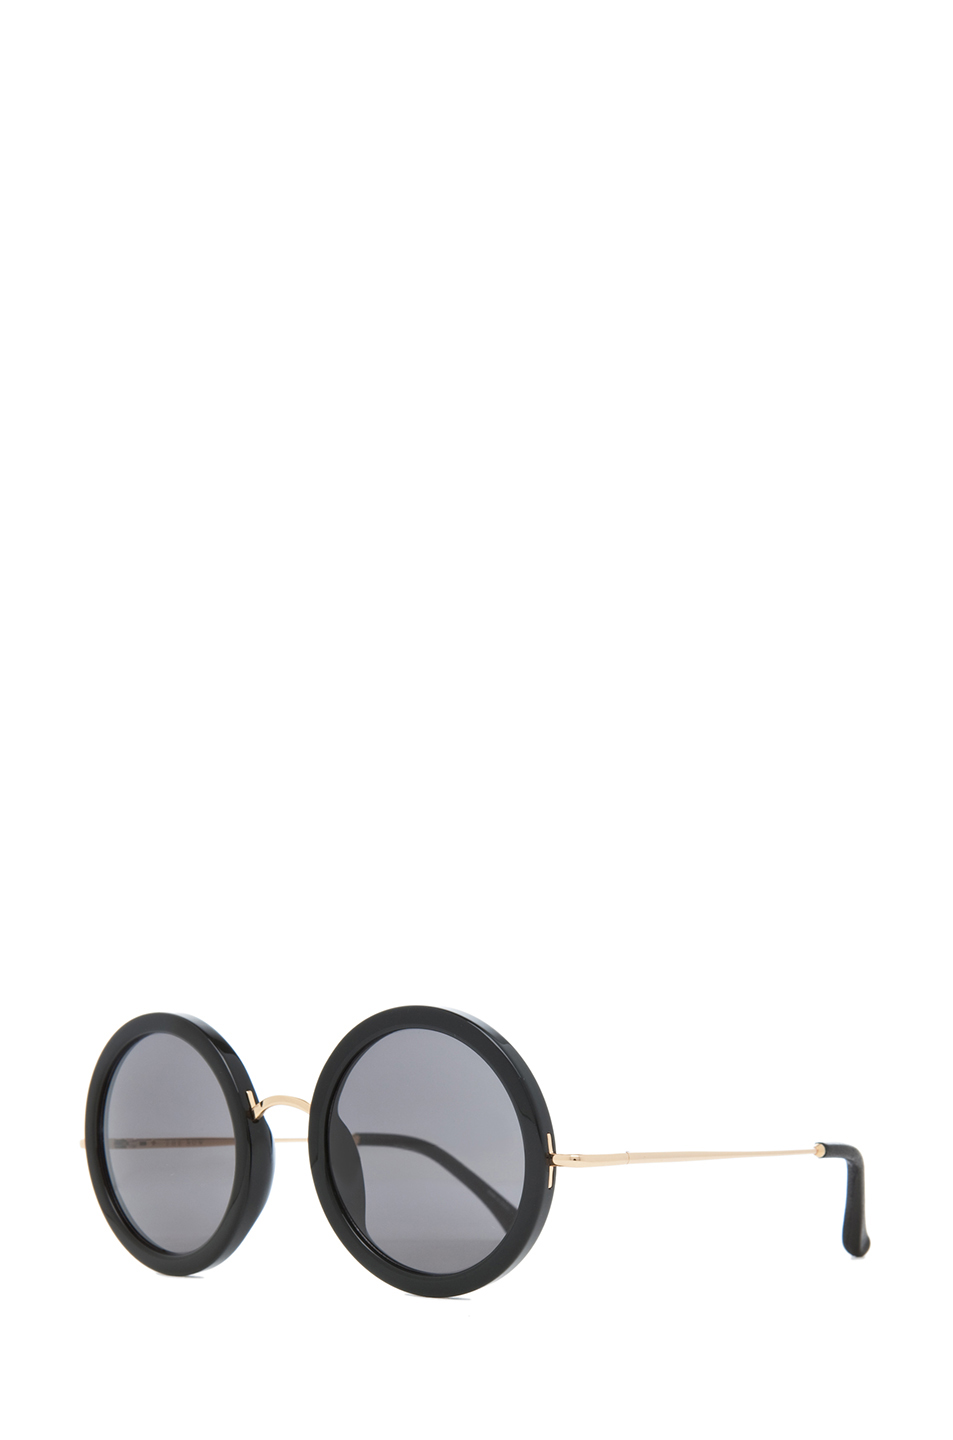 The Row|Signature Round Sunglasses in Black